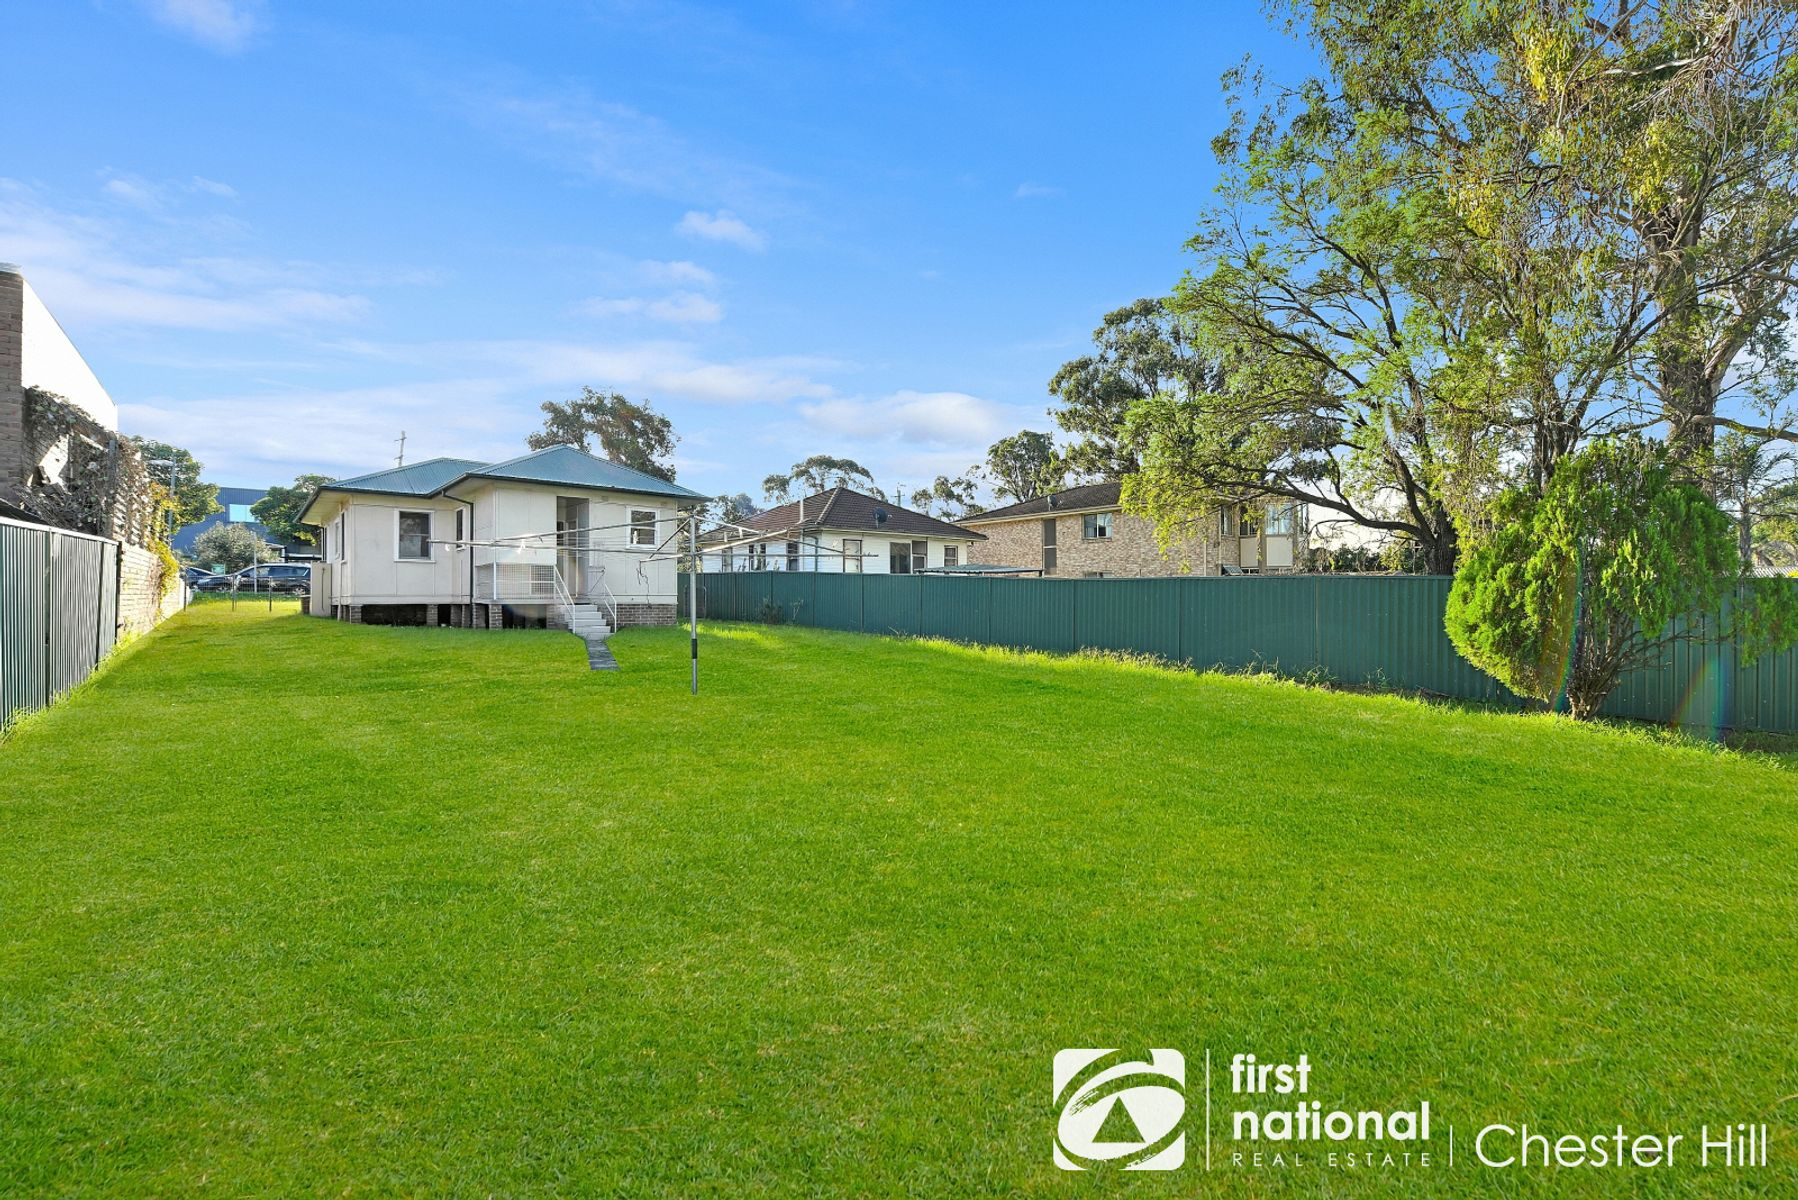 71 Ferndell Street, Chester Hill, NSW 2162